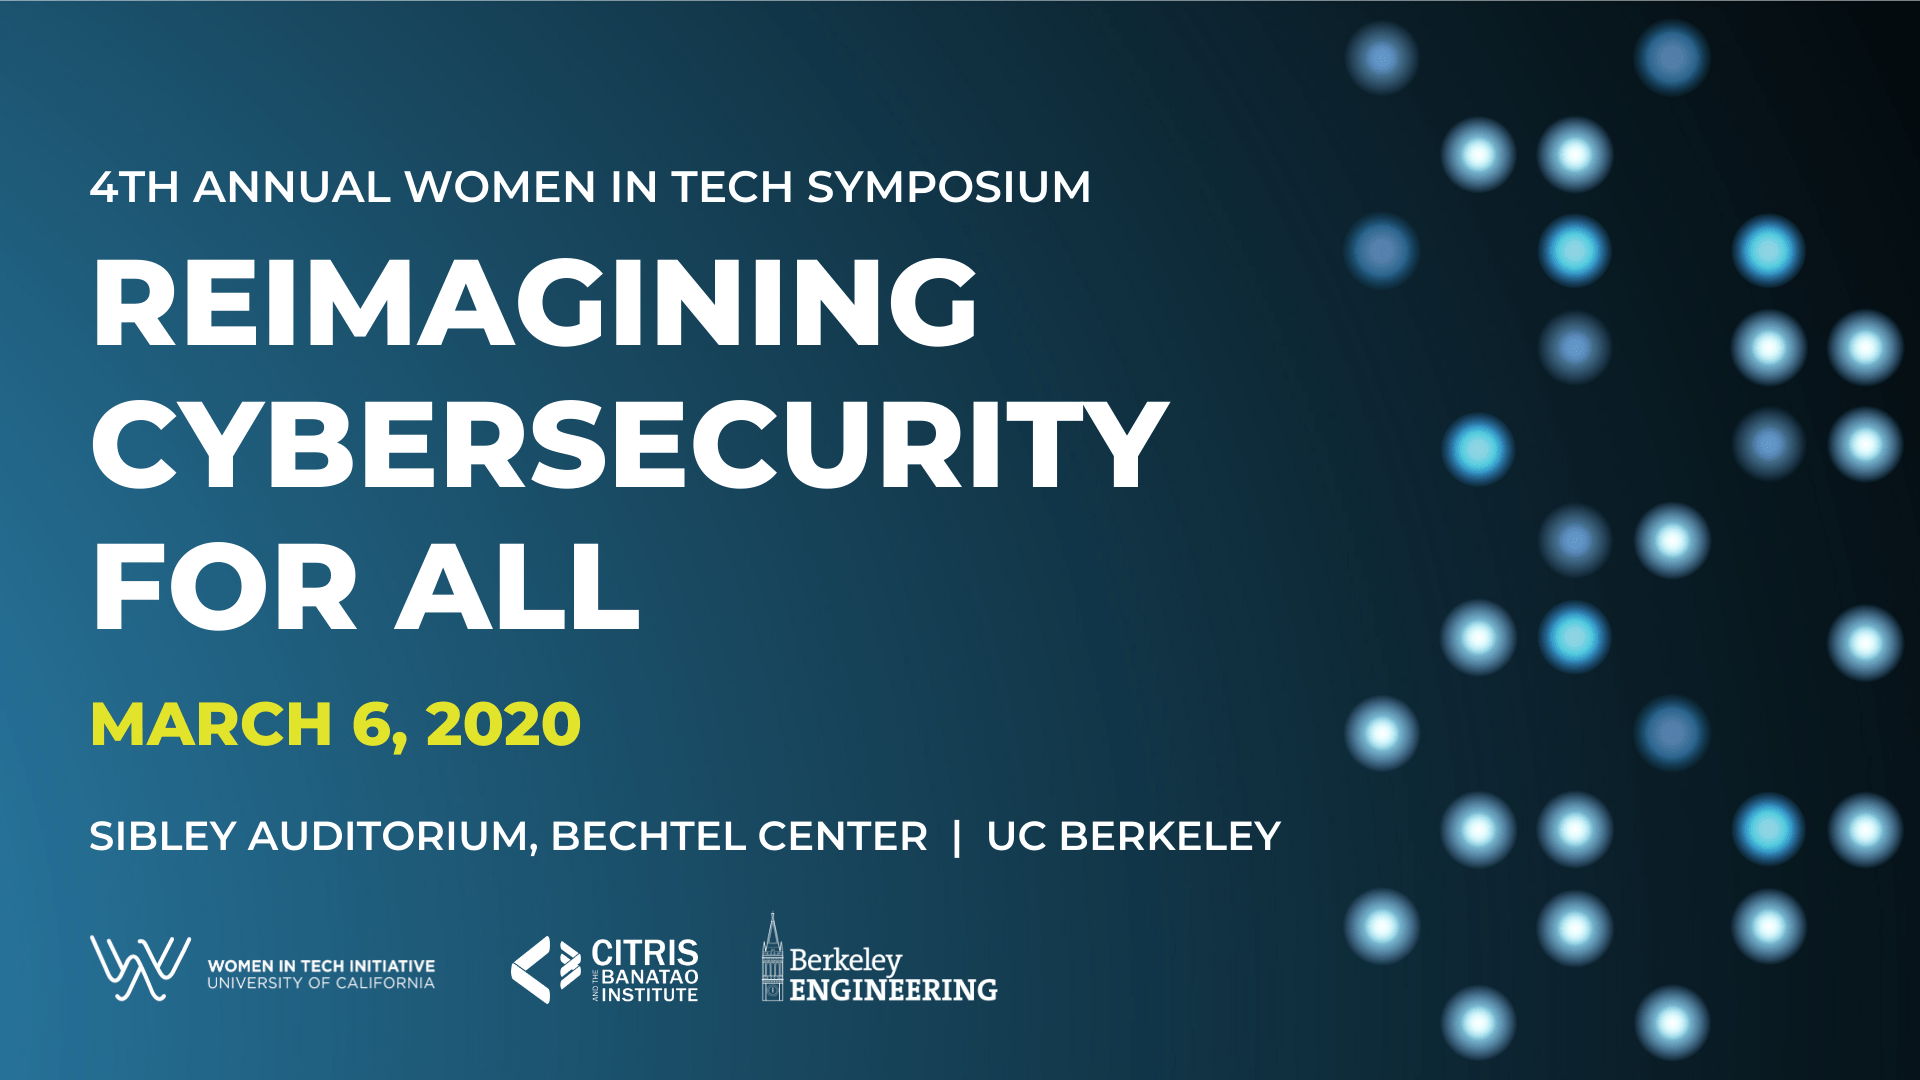 4th Annual Women in Tech Symposium - Reimagining Cybersecurity for All